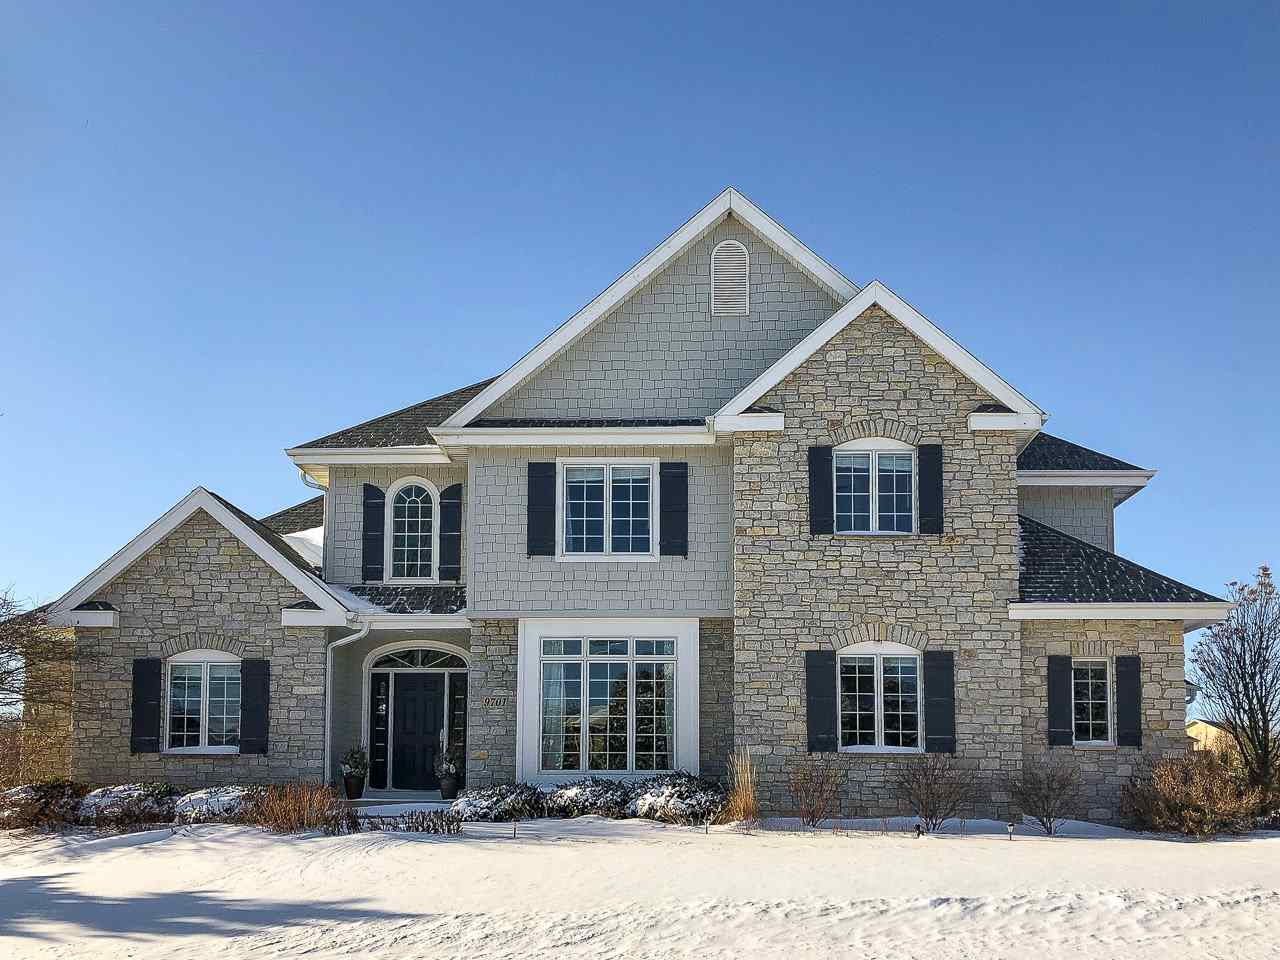 You'll love the natural light saturating this 5 bdrm Blackhawk home. The 2-story foyer & great rm welcome you in w/a wall of windows, gas FP + wet bar. To the right is the office/formal dining rm. A spectacular eat-in kitchen w/one of a kind island + high-end appliances (Wolf range, double wall ovens & Miele dishwasher) looks into the sunny family room with gas FP. A spacious owner's suite is at the other end of the home & features a large bath w/dual vanities, soaking tub + walk-in closet. Upstairs bedrms w/semi-private ensuite bathrms. The finished LL has exercise rm, 5th bedrm and rec rm. Flexible close date.